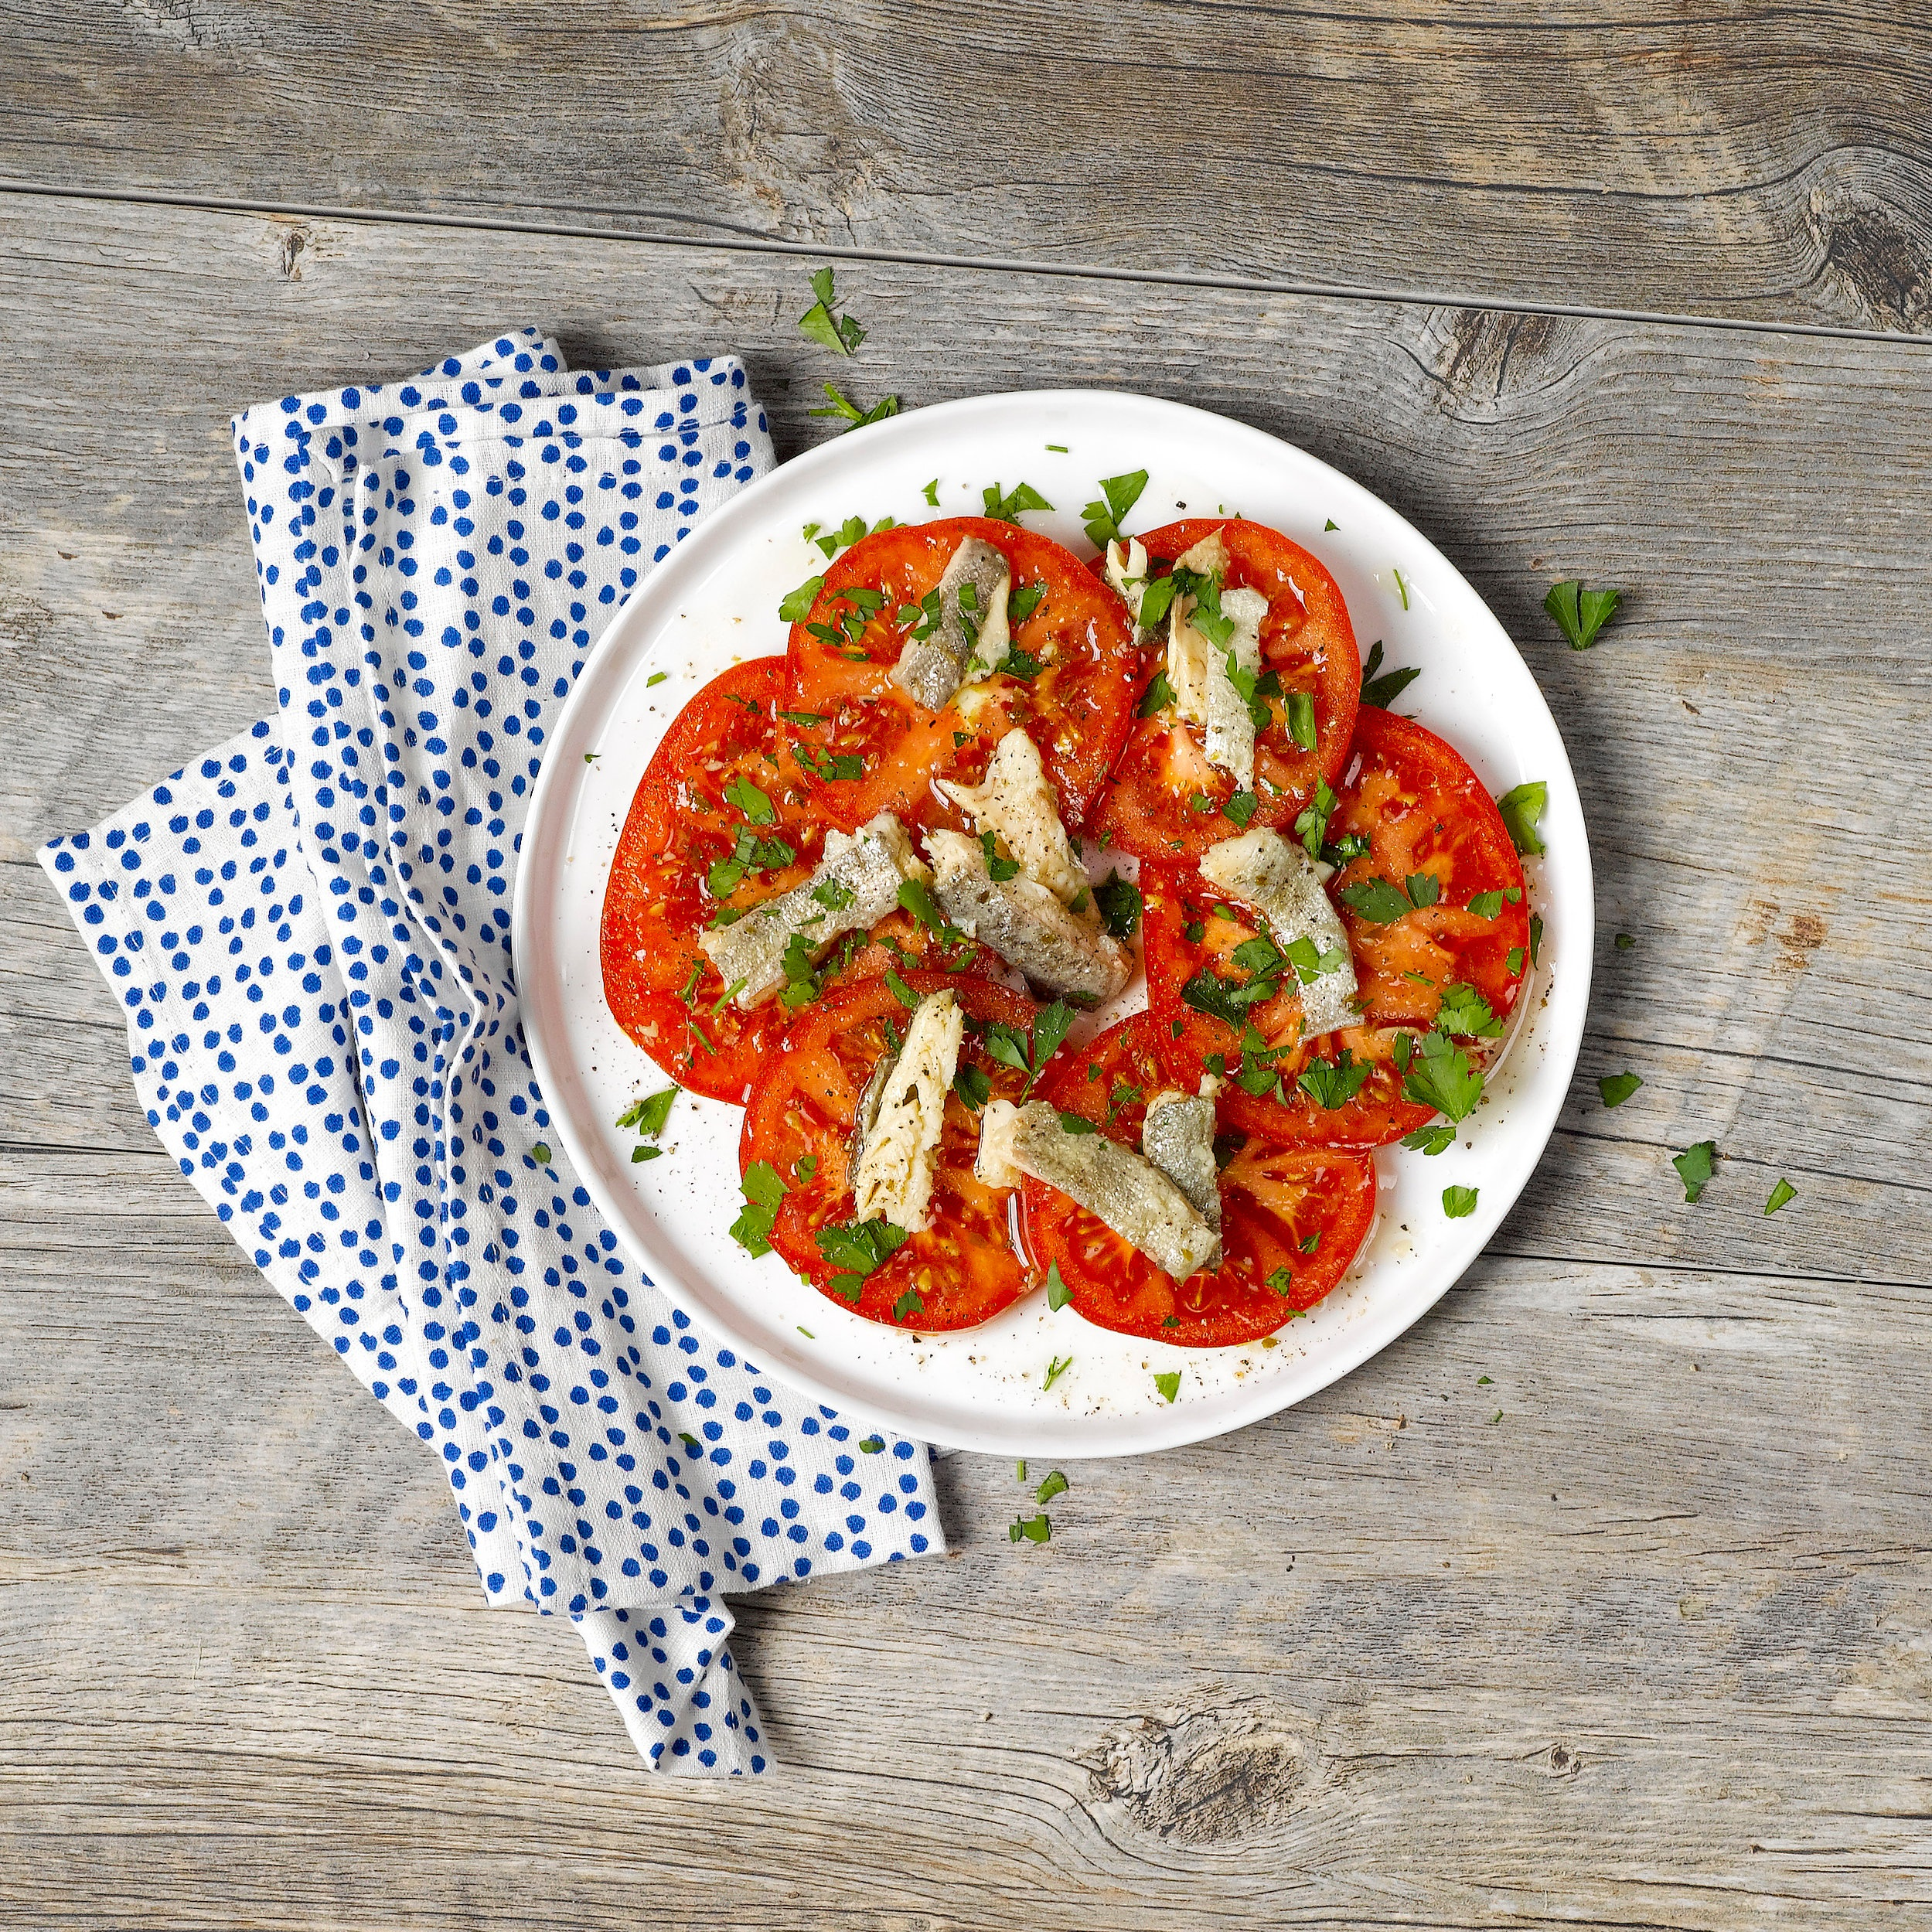 Tomatoes & Herbs Topped with Smoked Trout - Our Smoked Trout makes a perfect complement to some freshly sliced tomatoes. Top off your plate with some parsley, salt/pepper, and you have a deliciously healthy, light summer lunch!